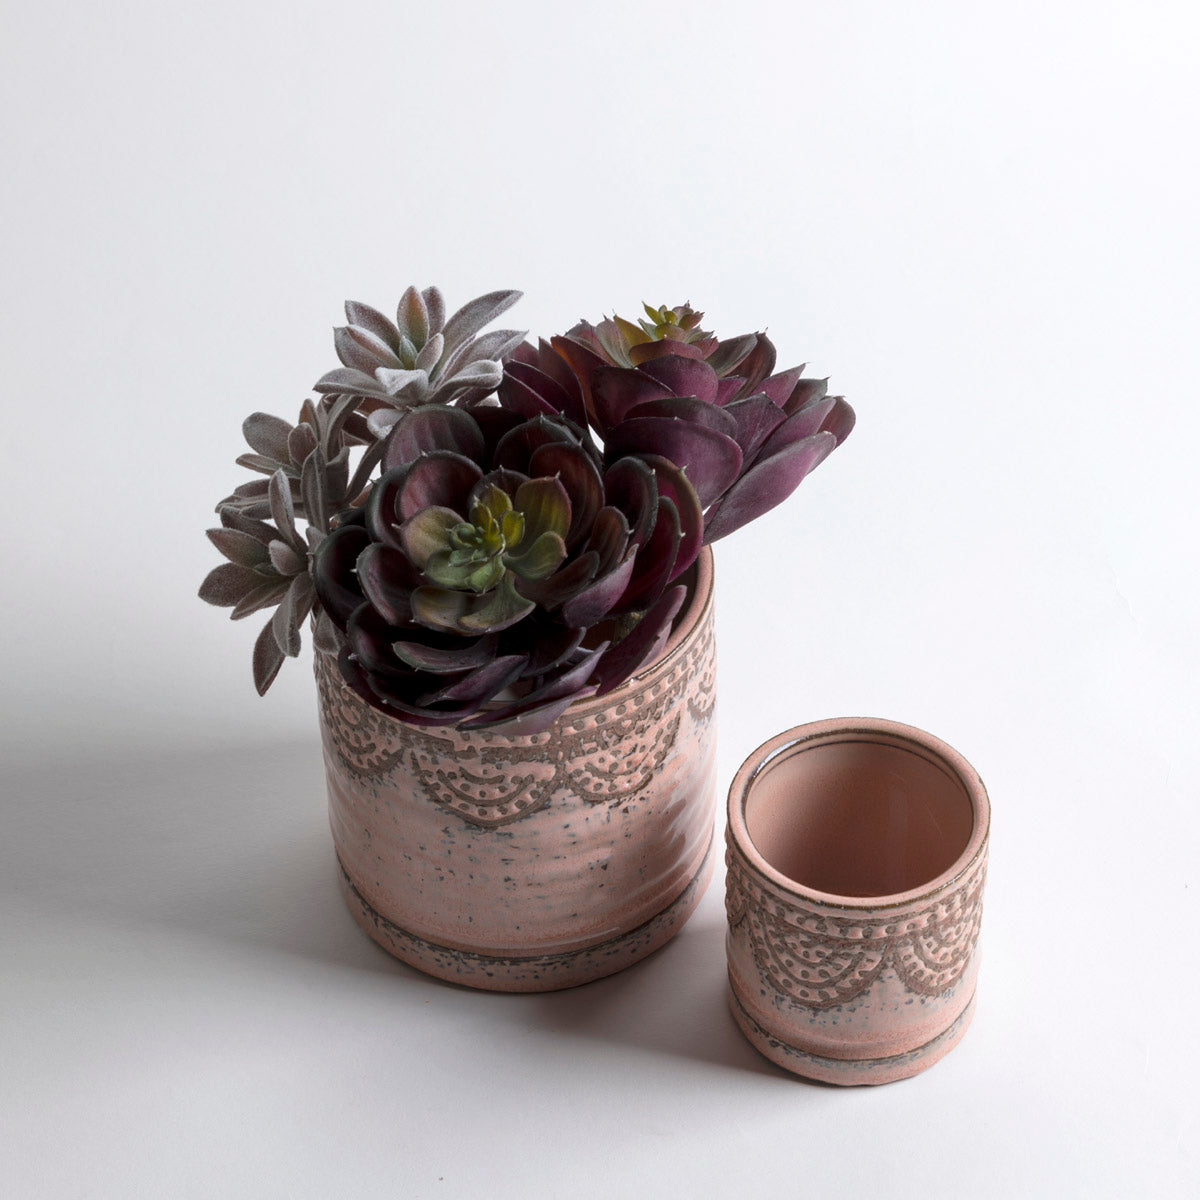 Lavender Lace Pot - Picnic SF